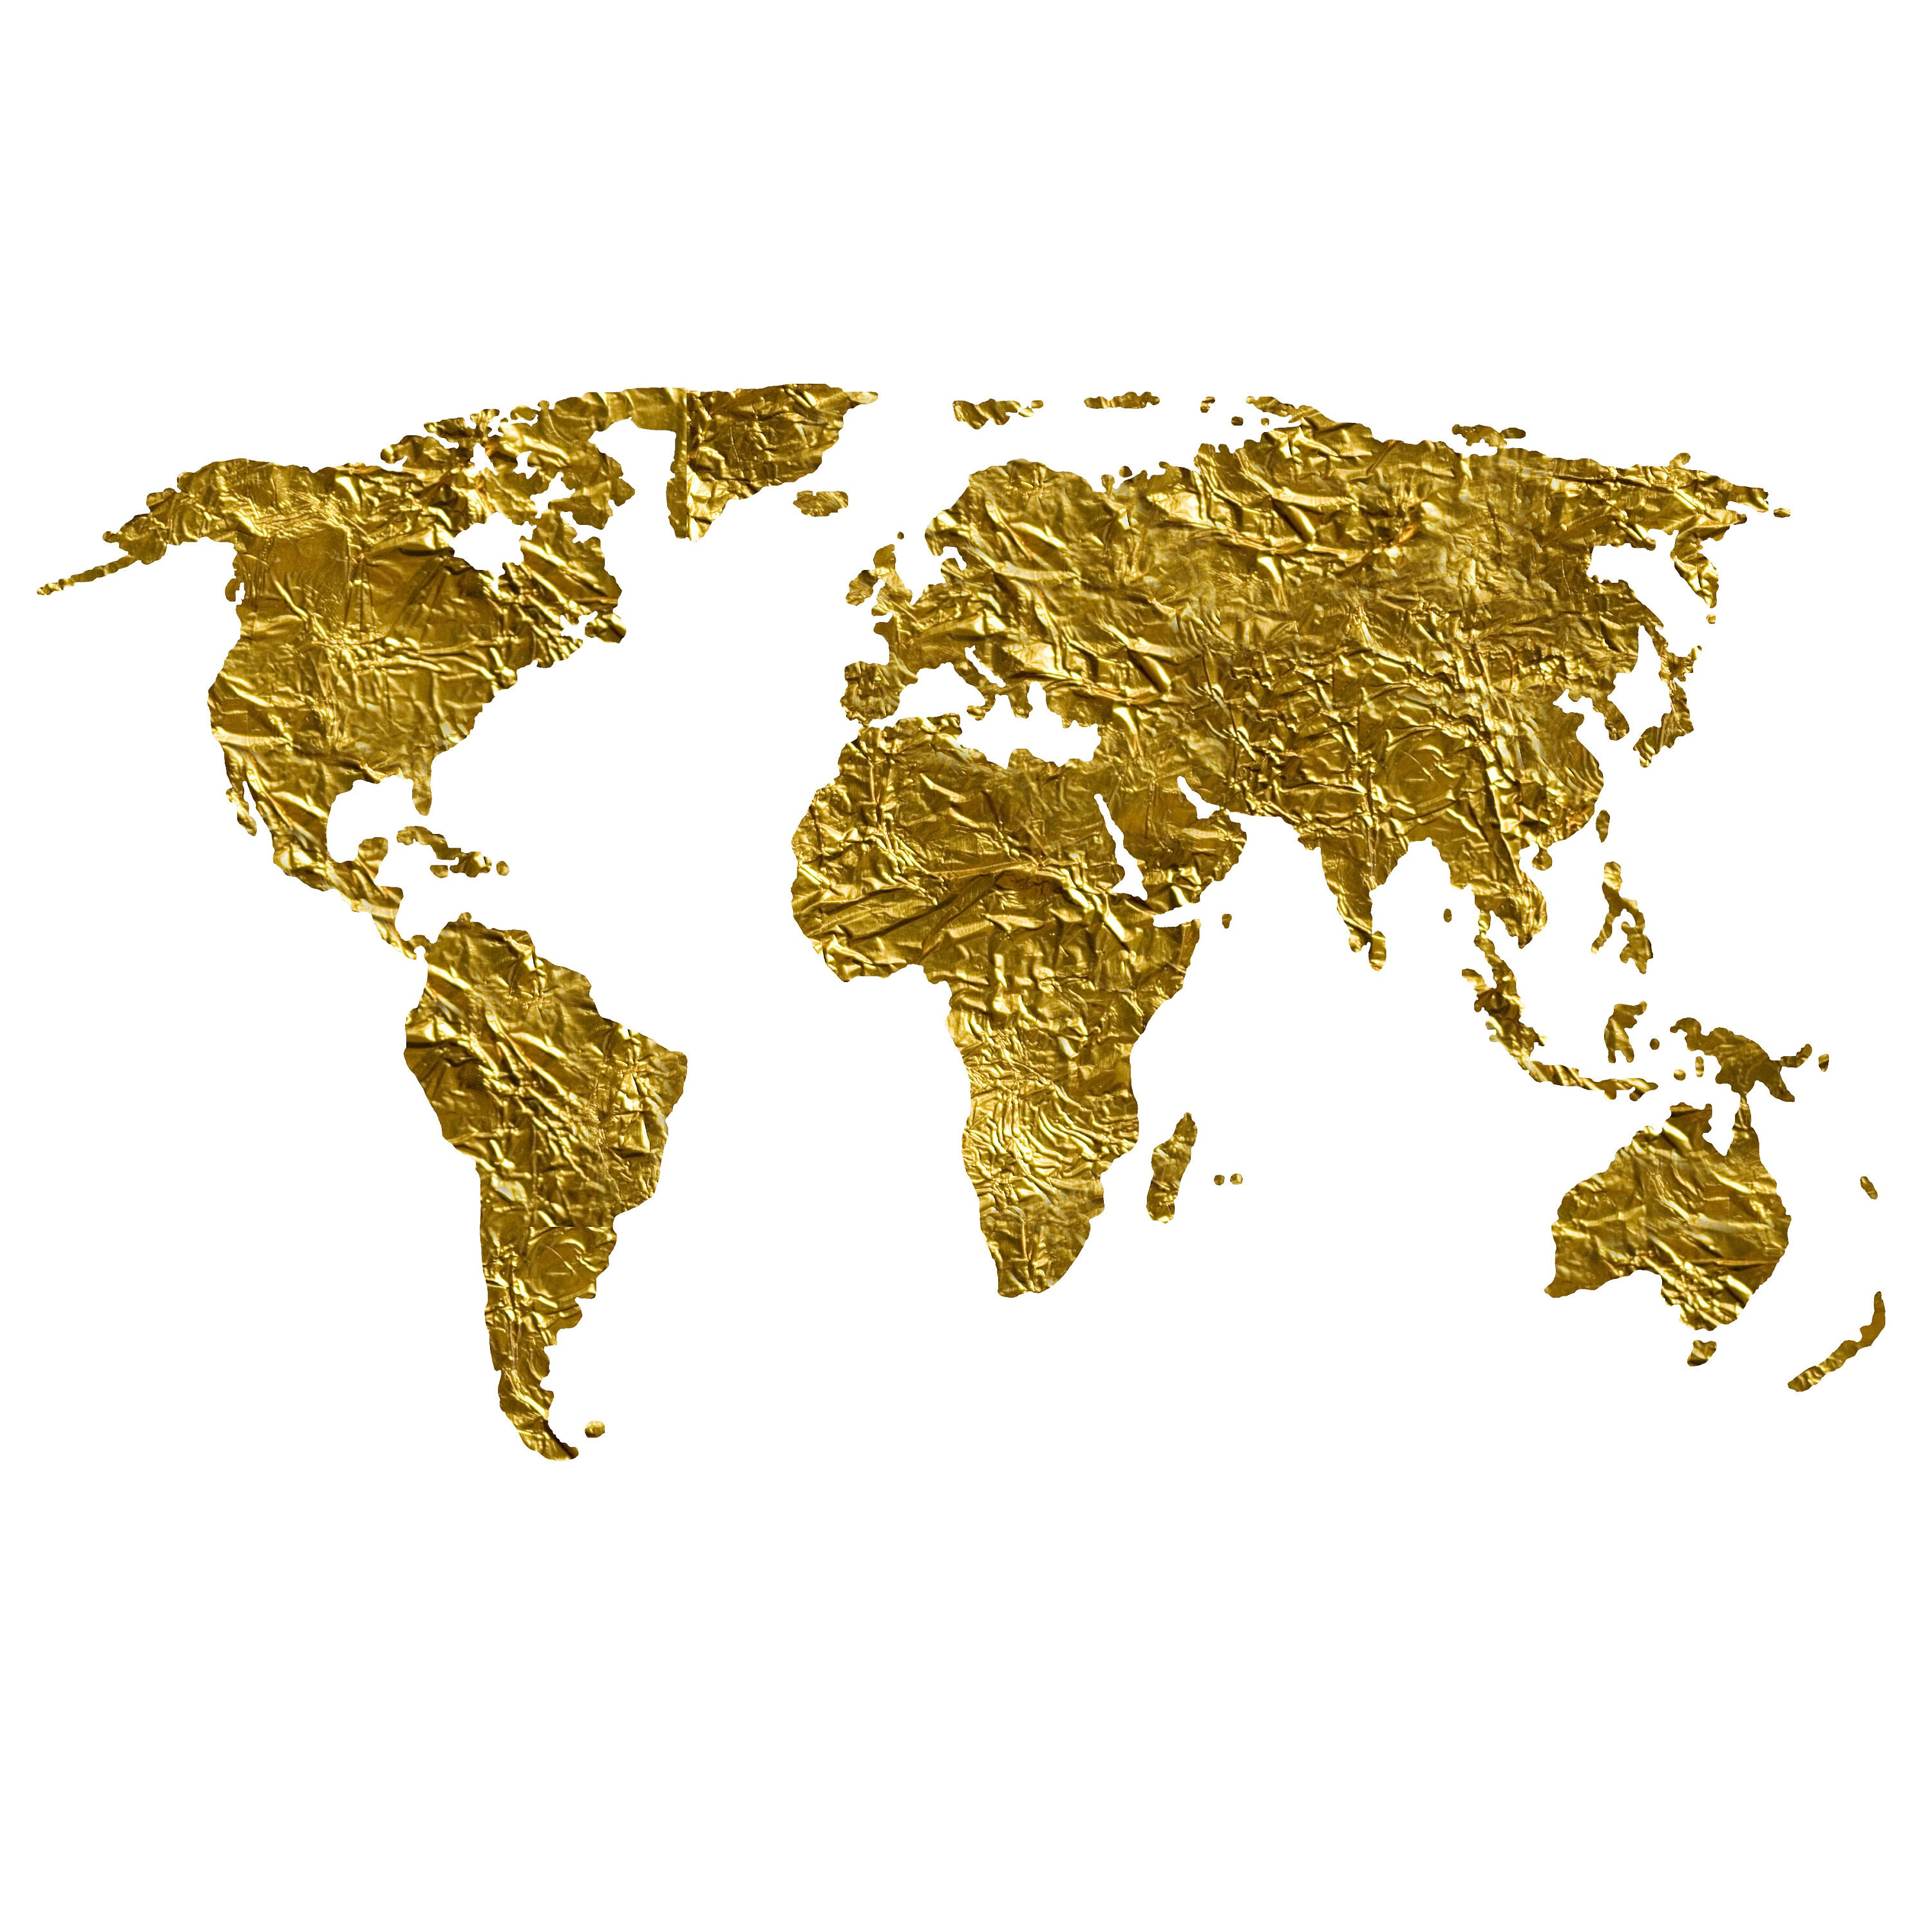 World Map Clip Art, Map of the World, Gold Foil, Shining Gold Art ...